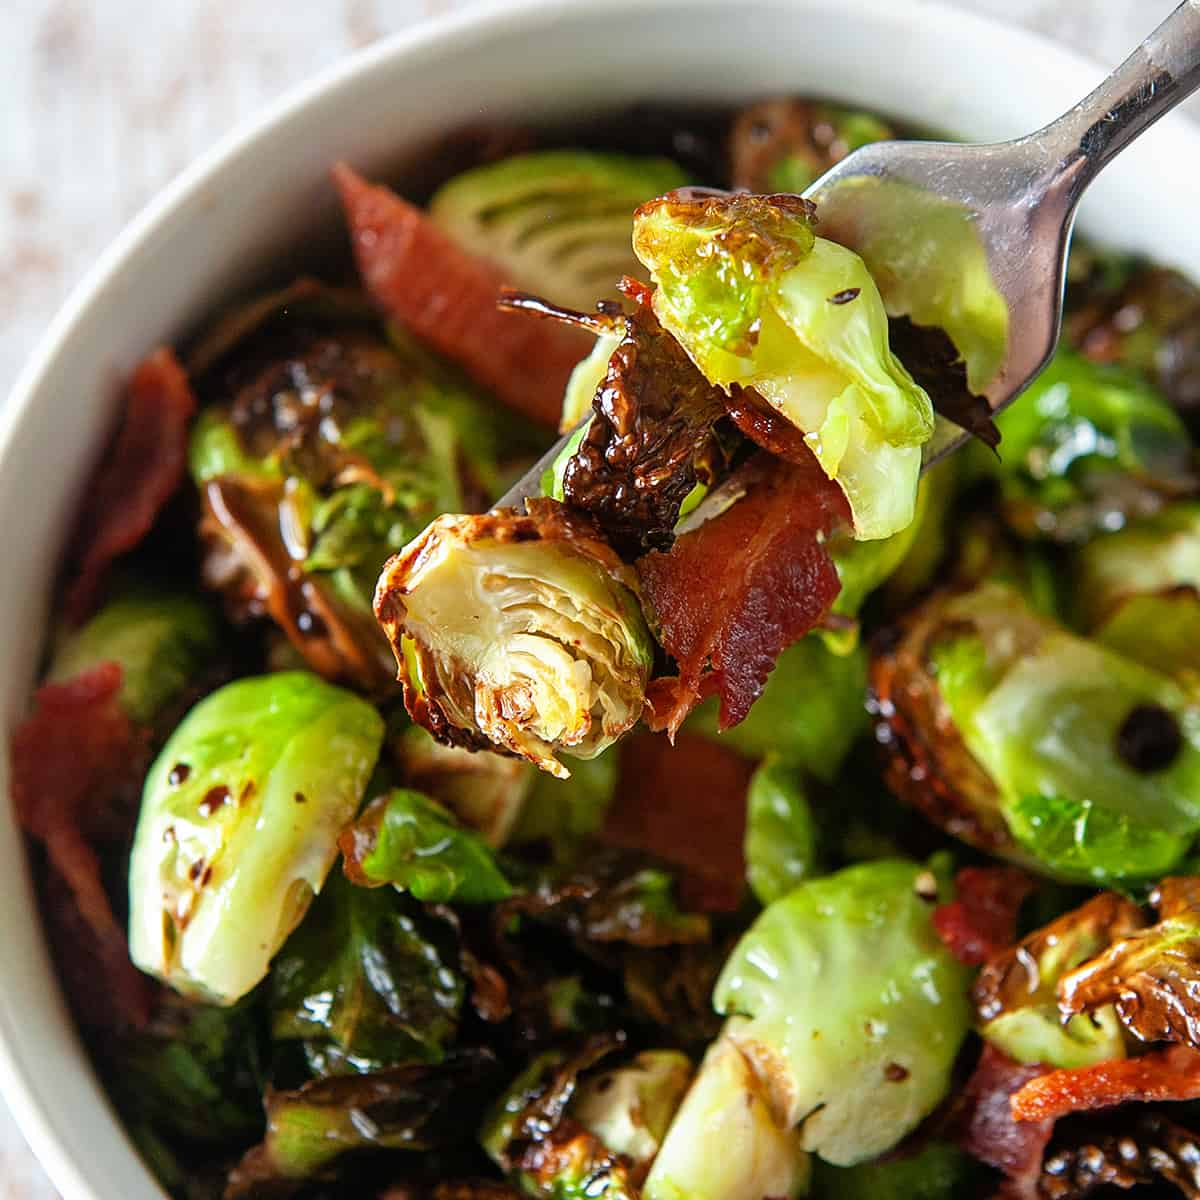 Forkful of air fryer Brussels sprouts with bacon.